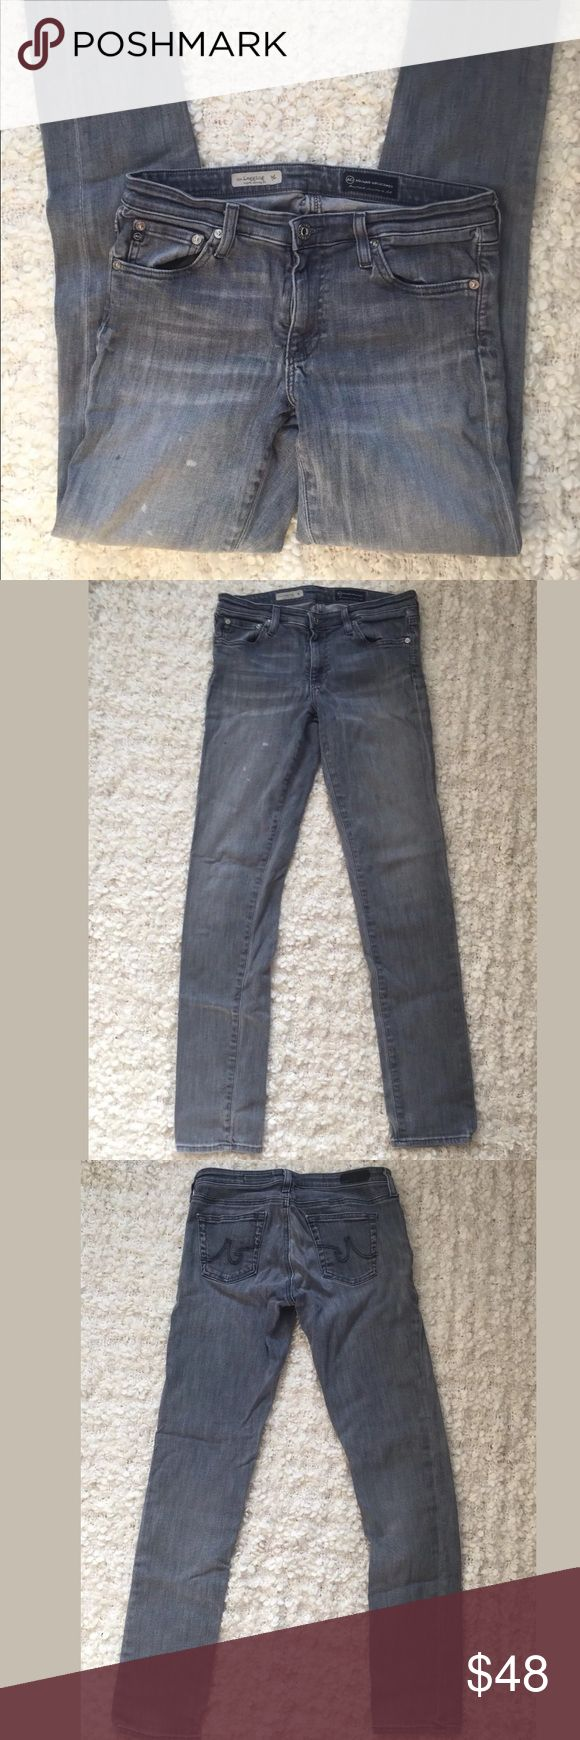 """AG  Adriano Goldschmied the legging super skinny Excellent used condition! AG """"the legging"""" jeans super skinny Size 29 regular. Have a couple of lighter and darker spots on the legs please see pictures.    The Legging by AG is a super skinny legion fit in gray. Pants feature a five pocket styling. Zip fly with one button closure. 98% cotton. Made in USA  Waist 15 inches  Inseam 30.5 inches  Rise 7.5 inches  B52 Ag Adriano Goldschmied Jeans Skinny"""